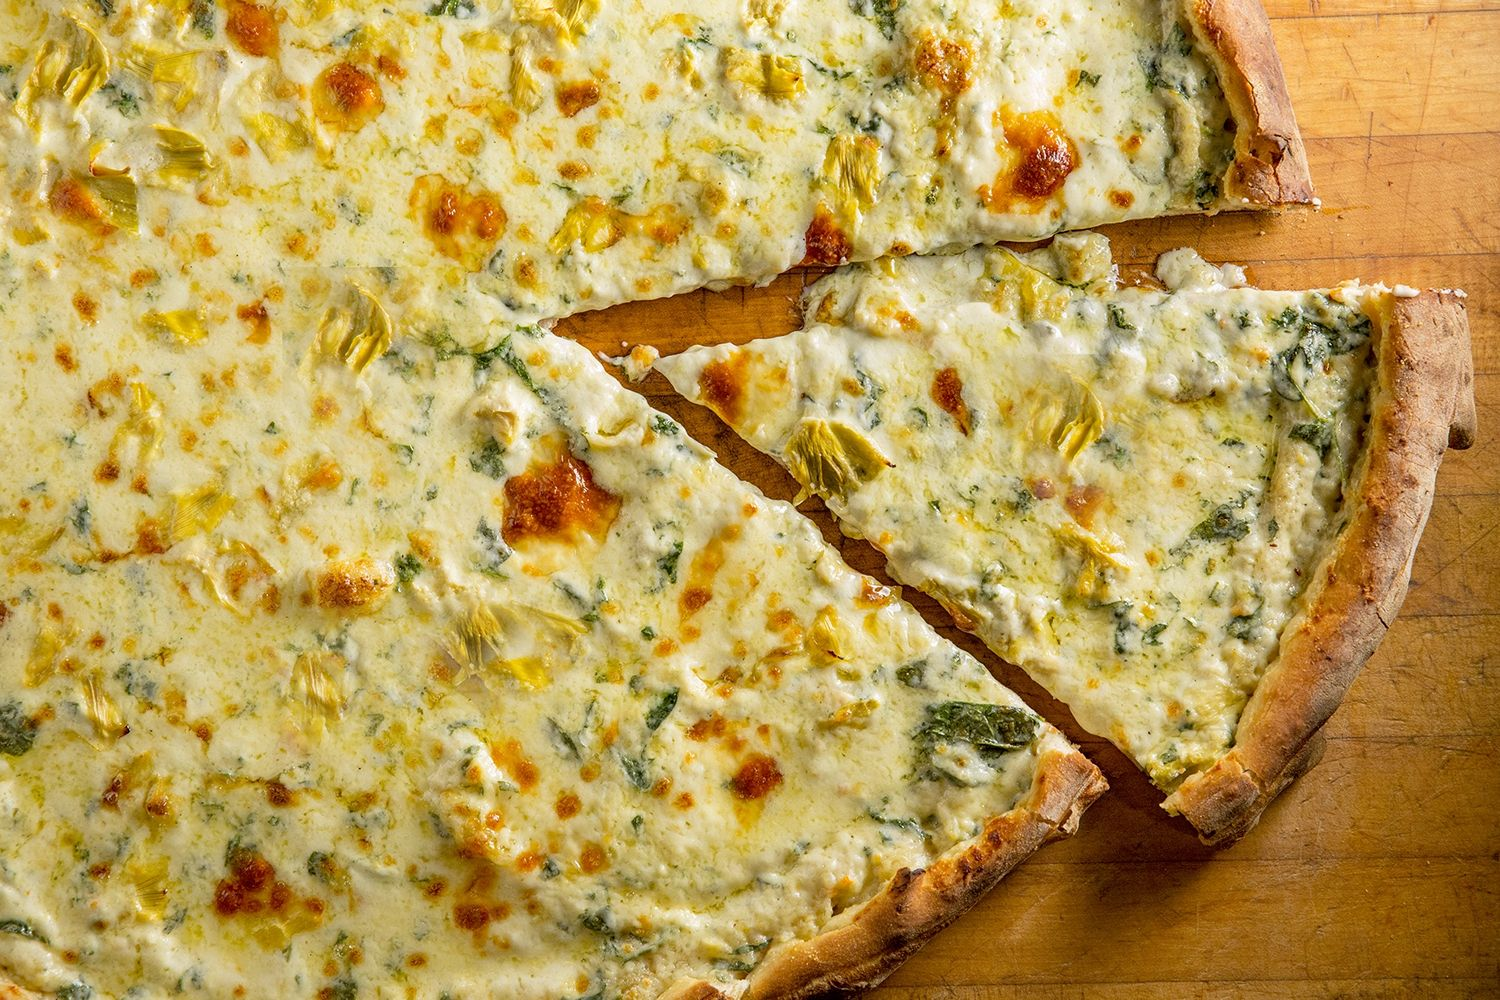 Famed Artichoke Basille's Pizza will open a new location in Jersey City in Spring of 2021.